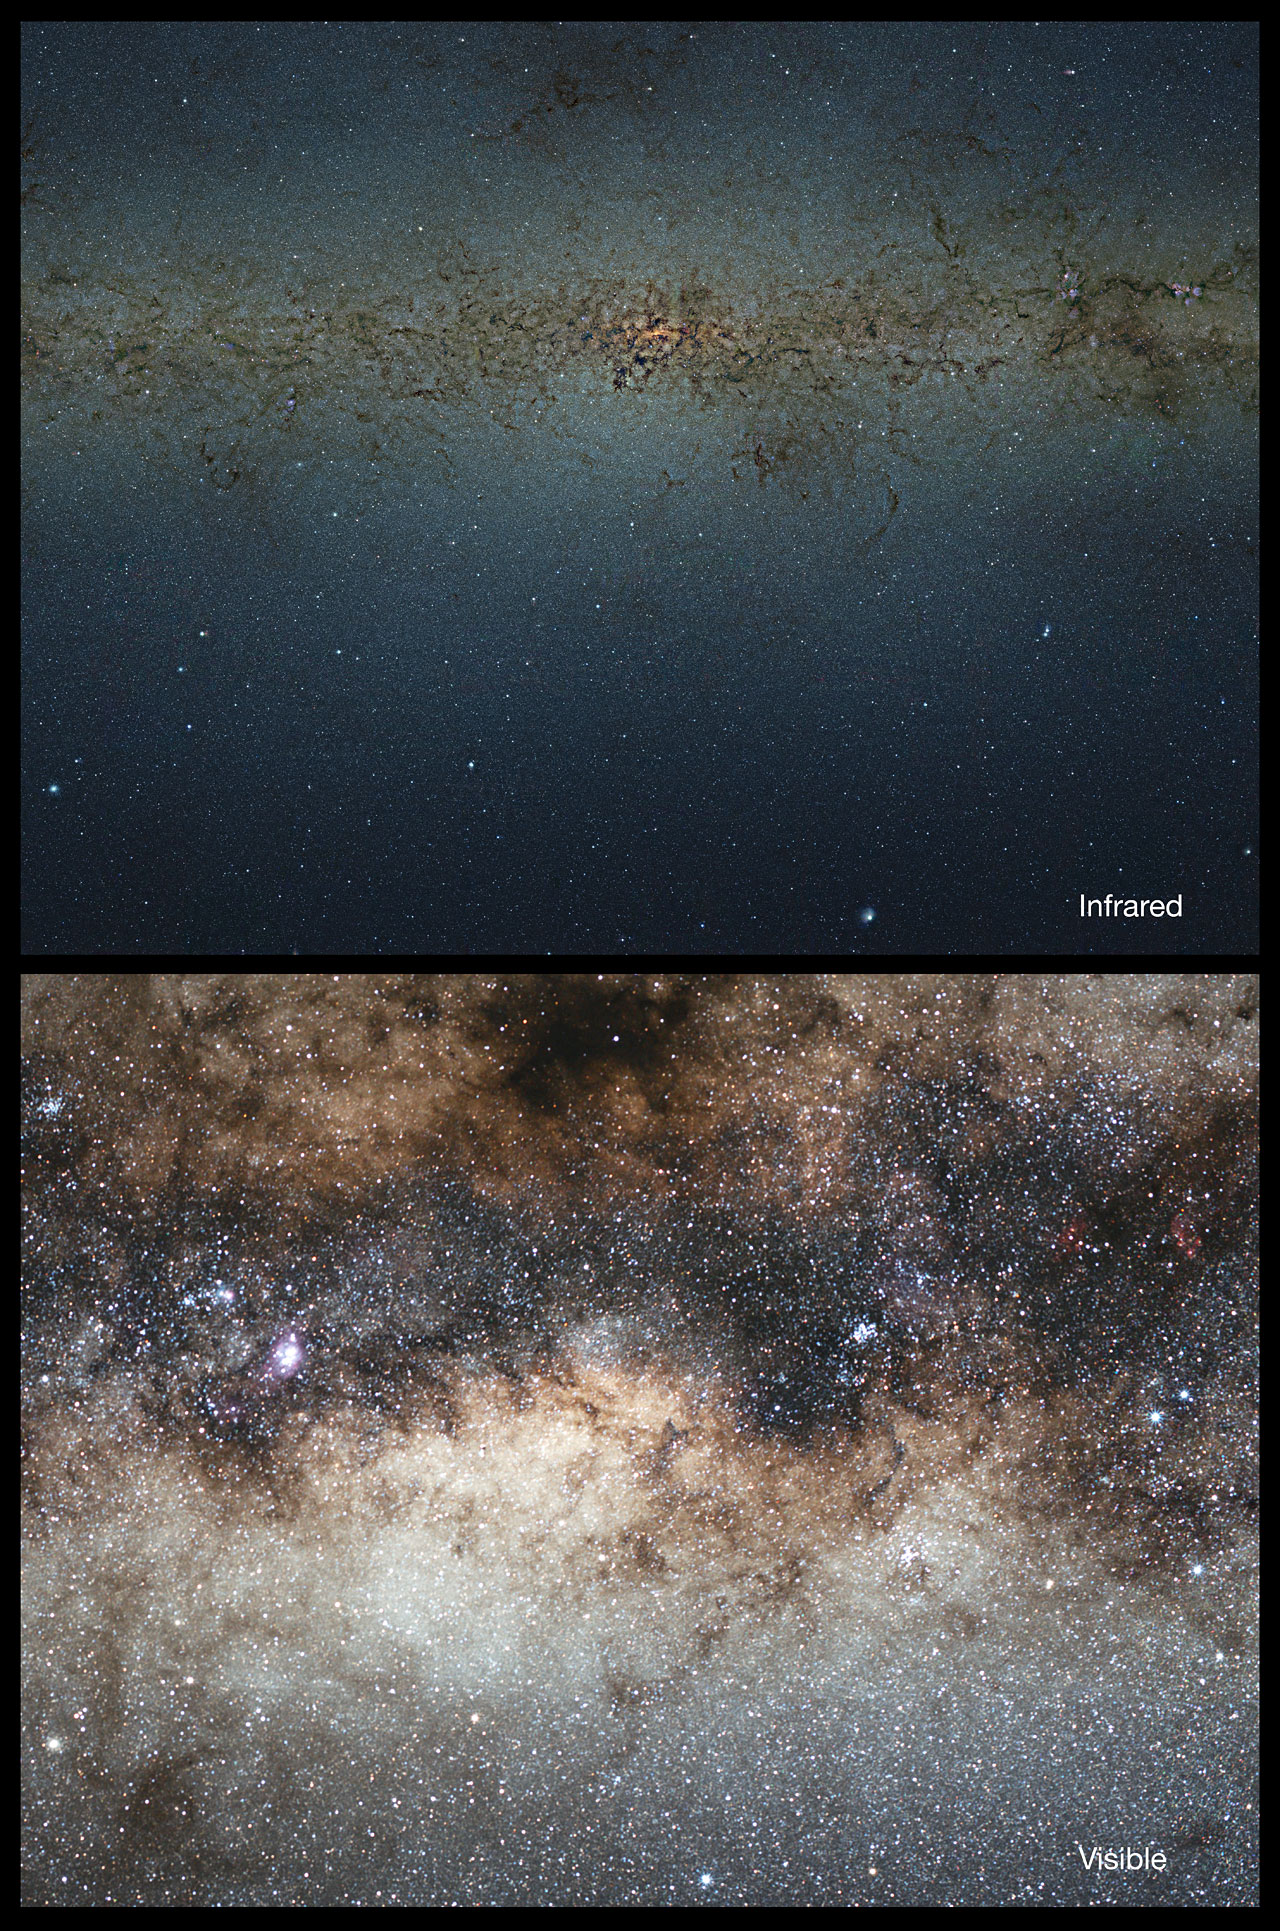 Optical/infrared comparison of the central parts of the Milky Way